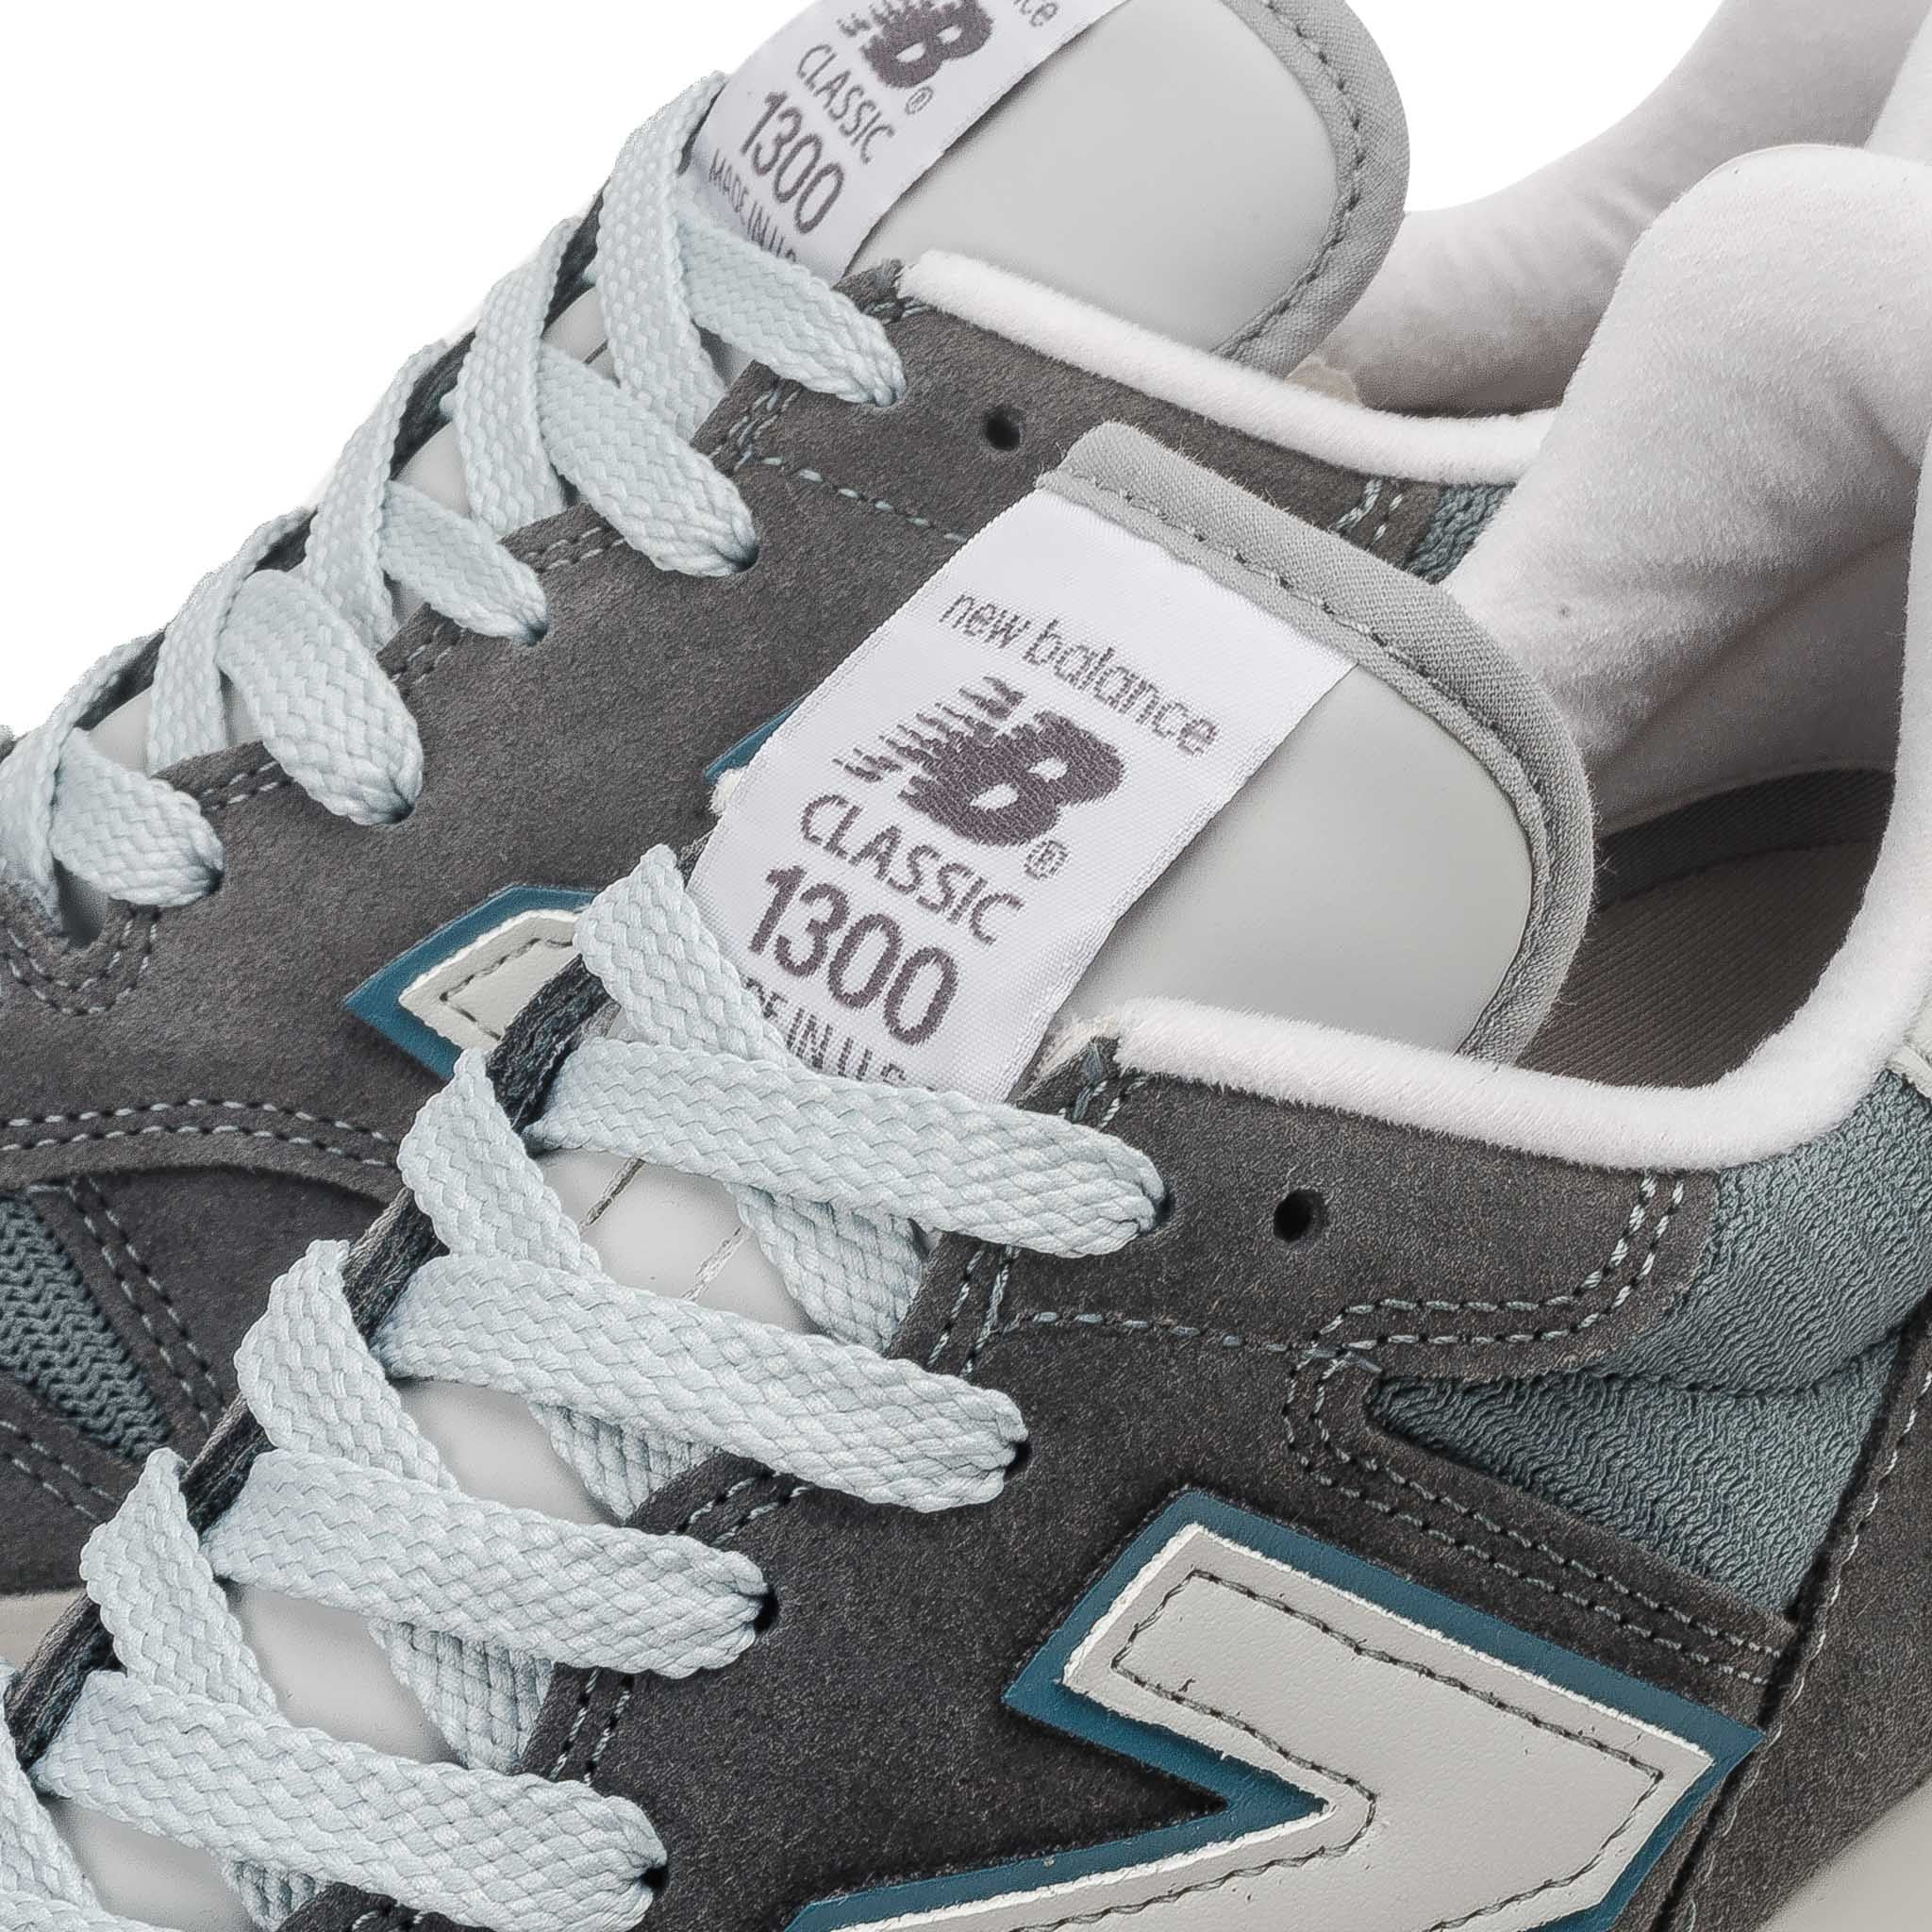 New Balance M1300CL Made In USA sells New Balance